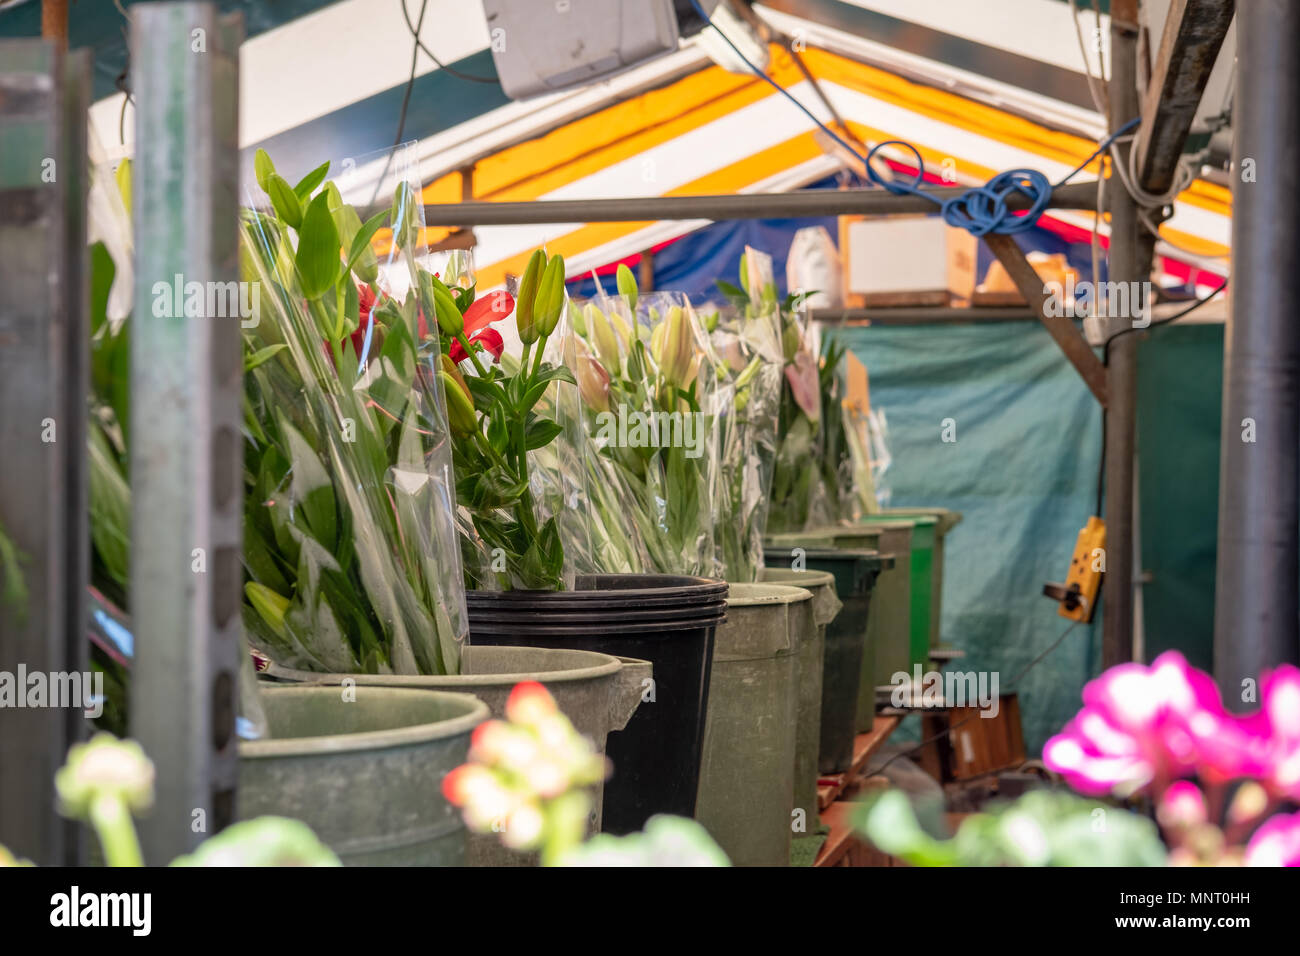 Isolated, shallow focus view of bunches of flowers seen in buckets of water, located inside a flower stall in a typical English town - Stock Image